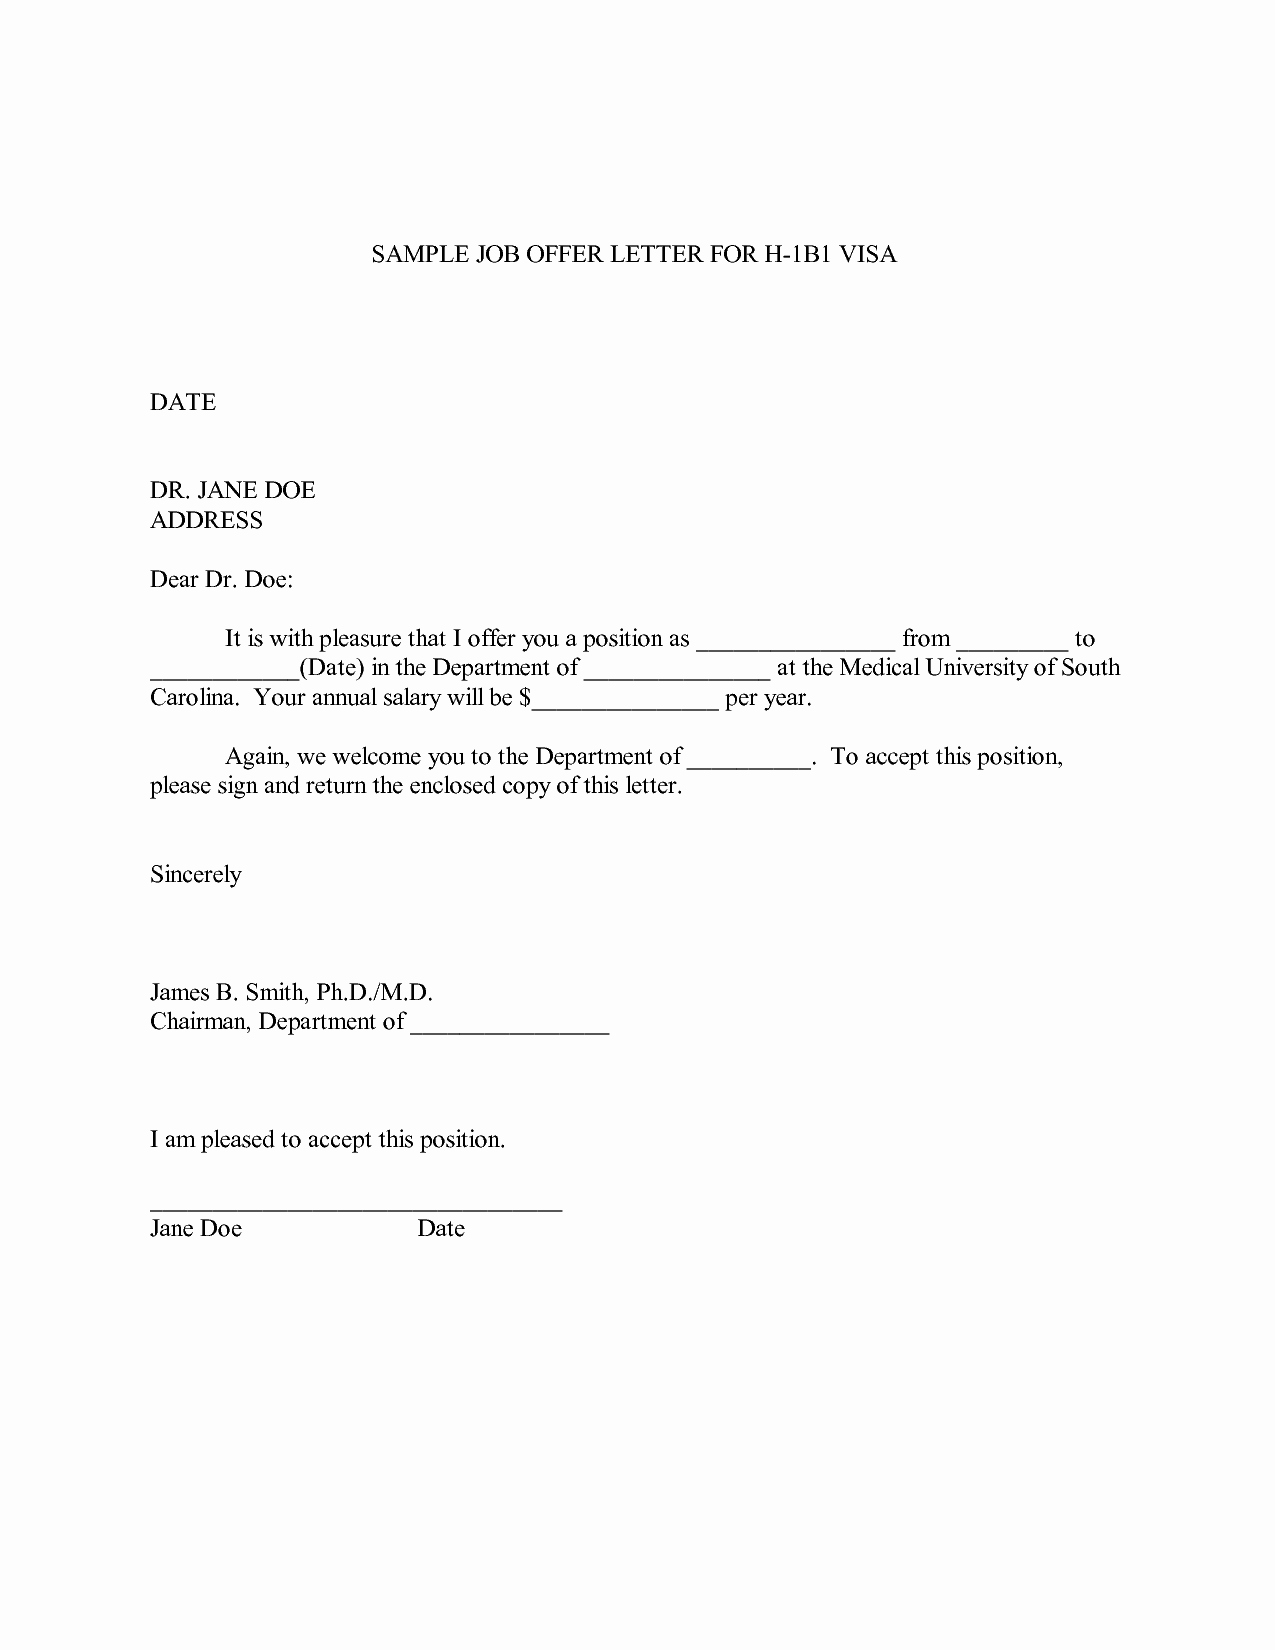 Job Offer Letter Template Doc Unique Job Fer Letter Sample